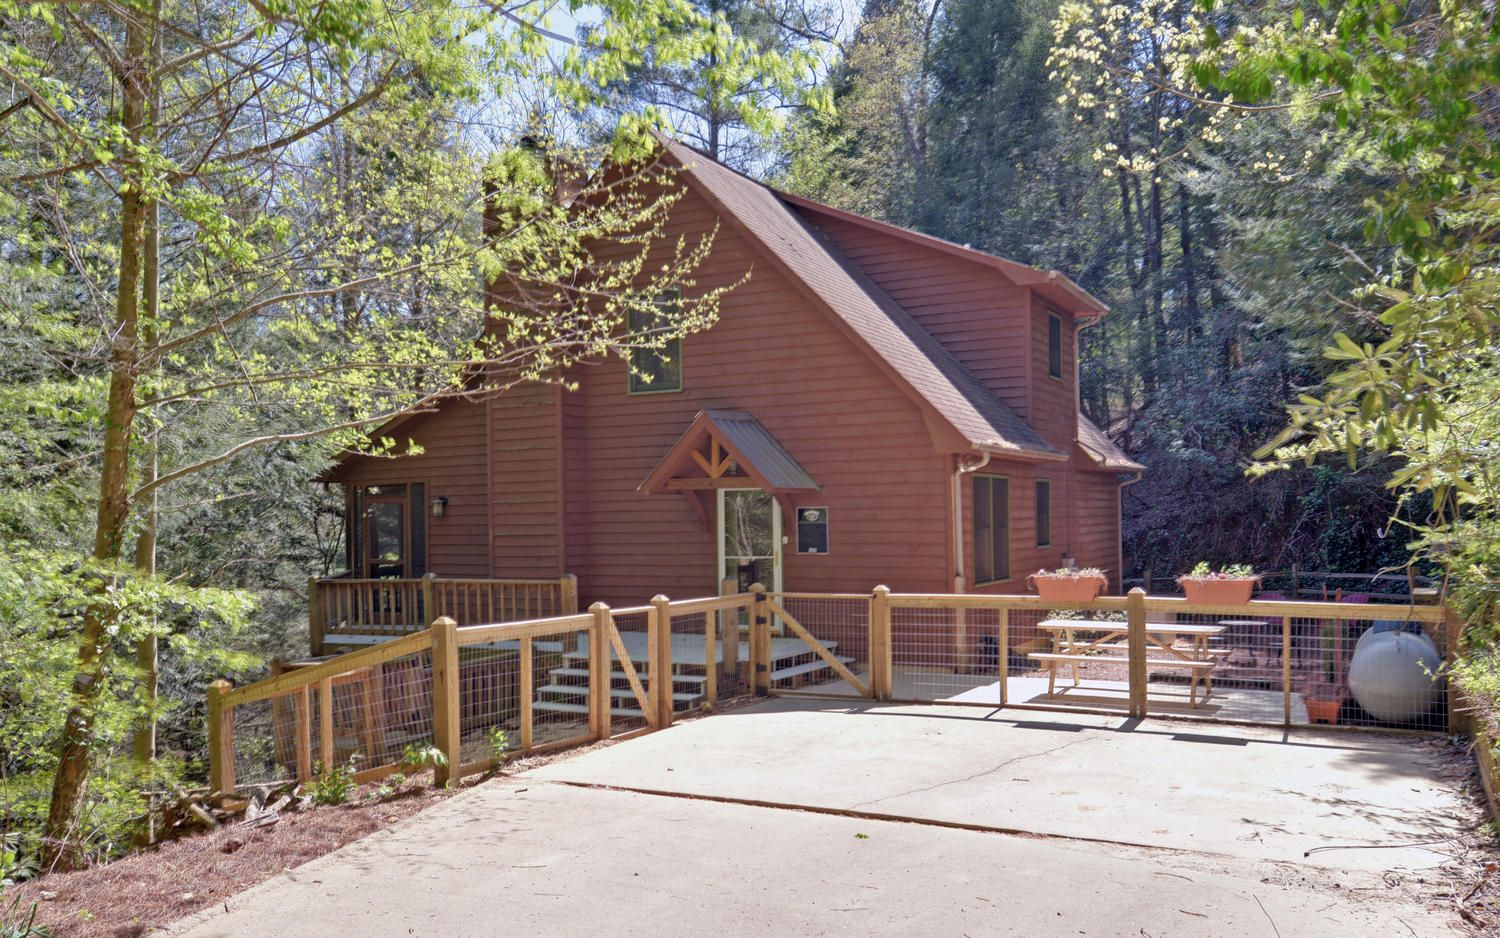 Secluded and a fenced yard Cabin, Cabins in north